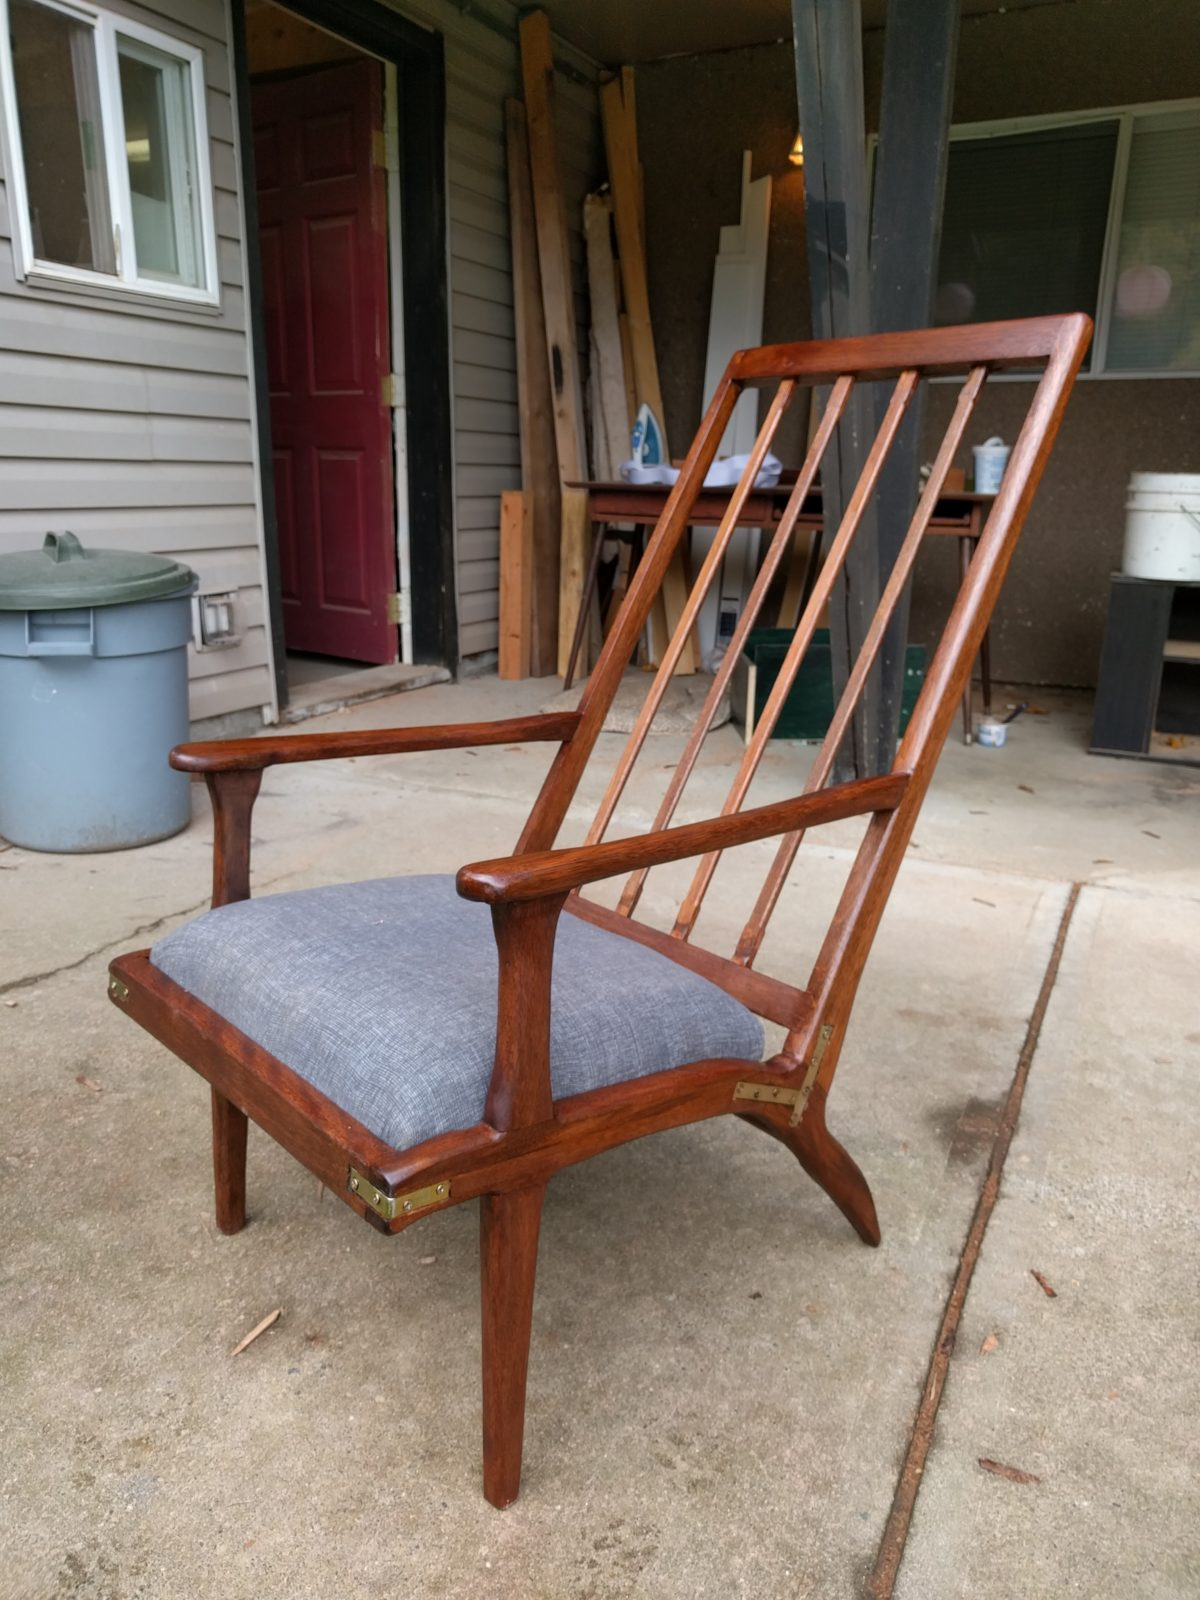 Prime Mid Century Modern Lounge Chair Finewoodworking Beatyapartments Chair Design Images Beatyapartmentscom